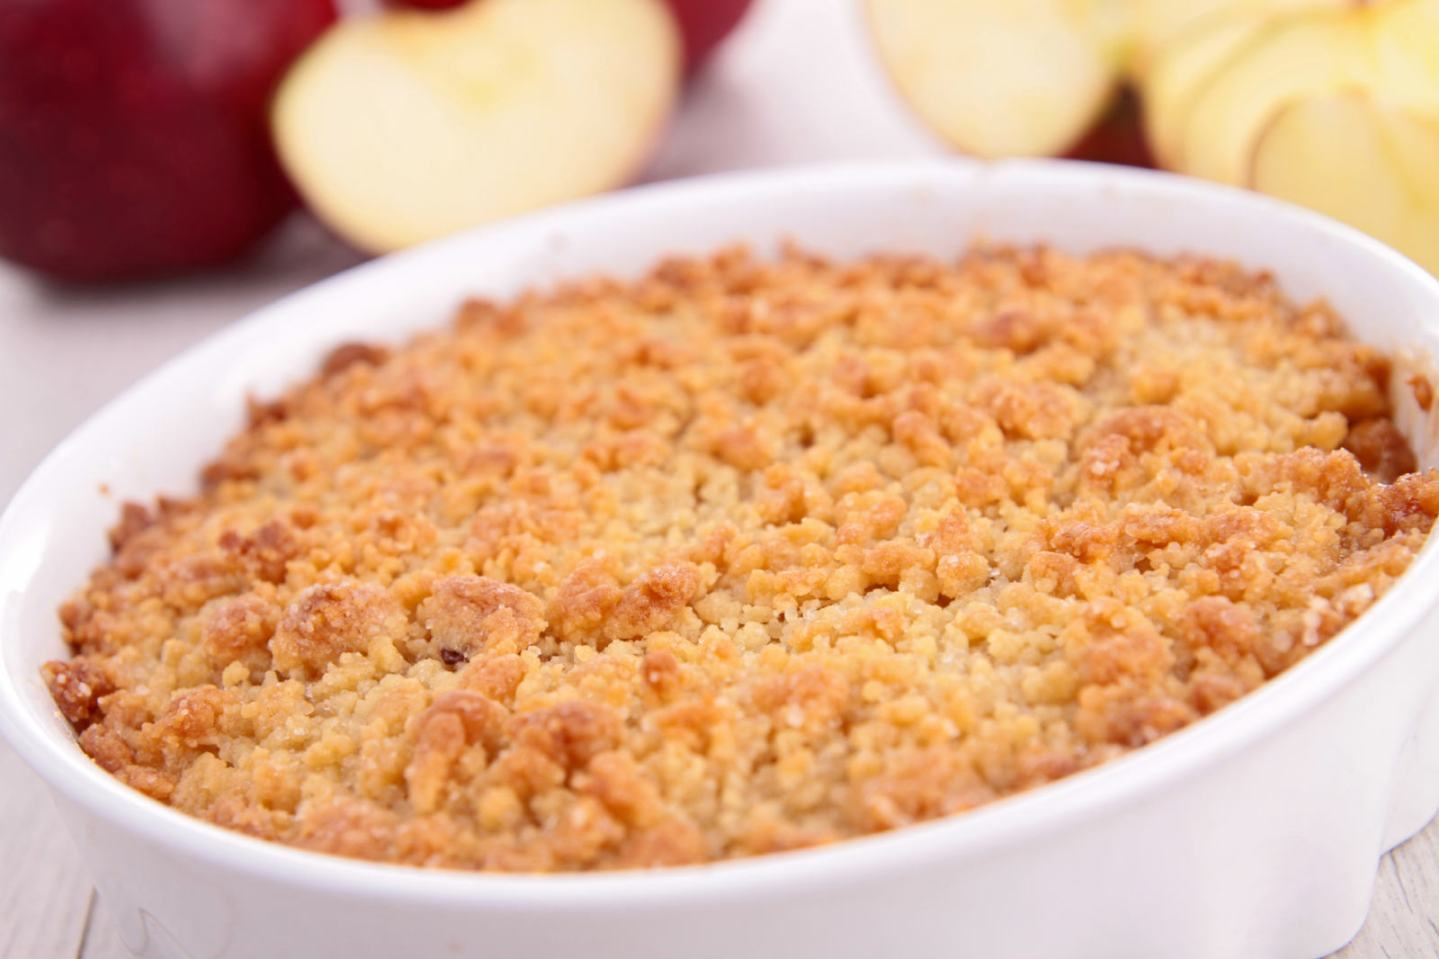 No Wheat Oat Crumble